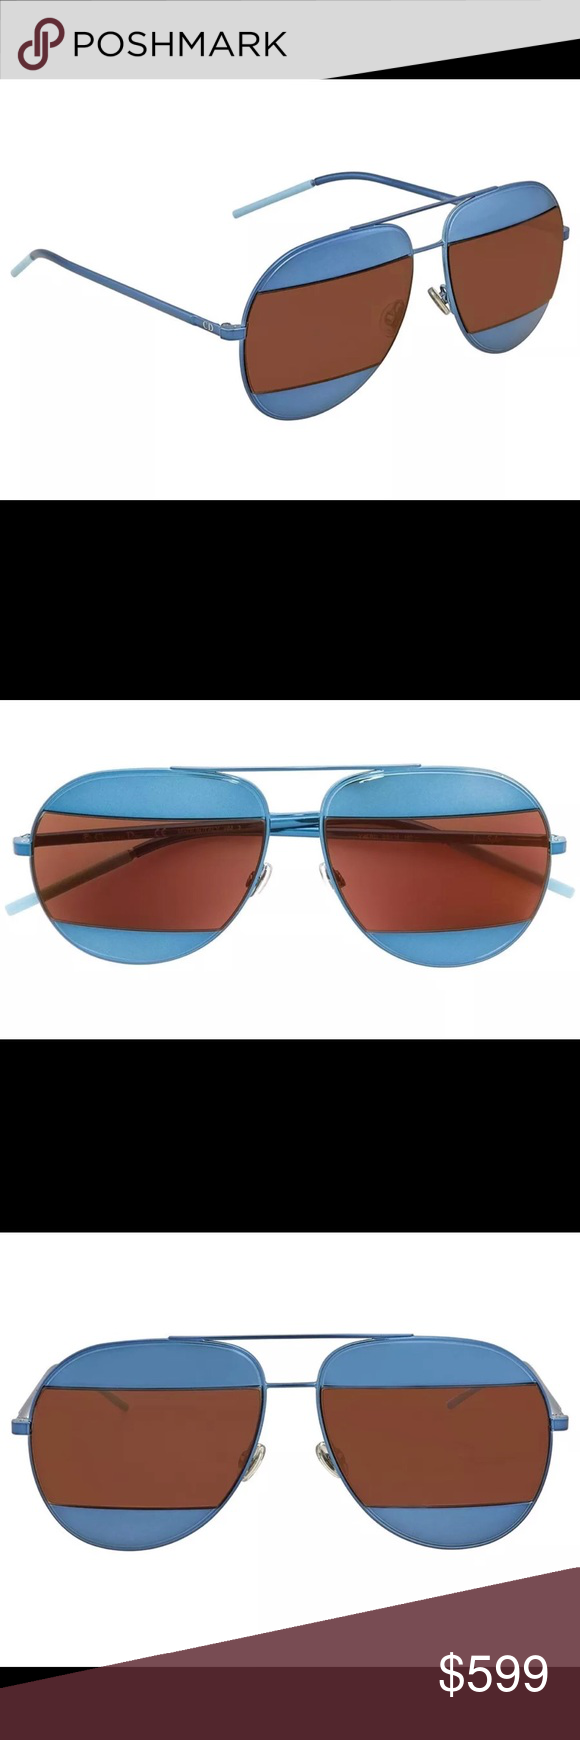 f7cf09333bcc New Christian Dior Split 1 S Sunglasses - Blue NEW CHRISTIAN DIOR SPLIT 1  0Y4E (RD) BLUE AUTHENTIC SUNGLASSES Dior is made using cutting-edge  materials